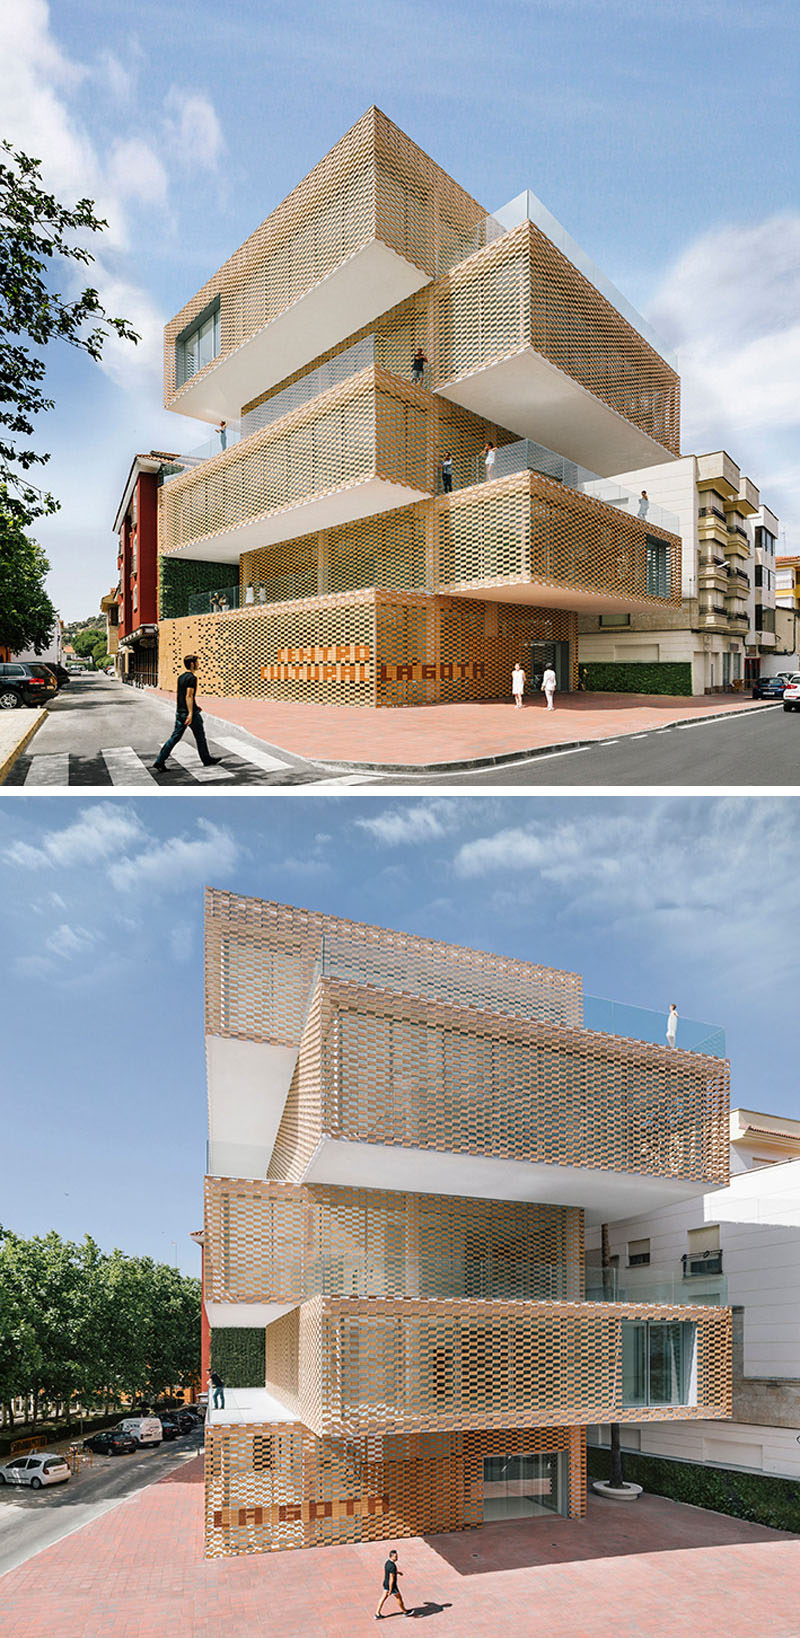 To represent the brick facades of the traditional brick builds that were used to dry tobacco, the exterior of the La Gota Cultural Center and Tobacco Museum in Navalmoral de la Mata, Spain, has been covered in a flexible ceramic that allows natural light into the building.